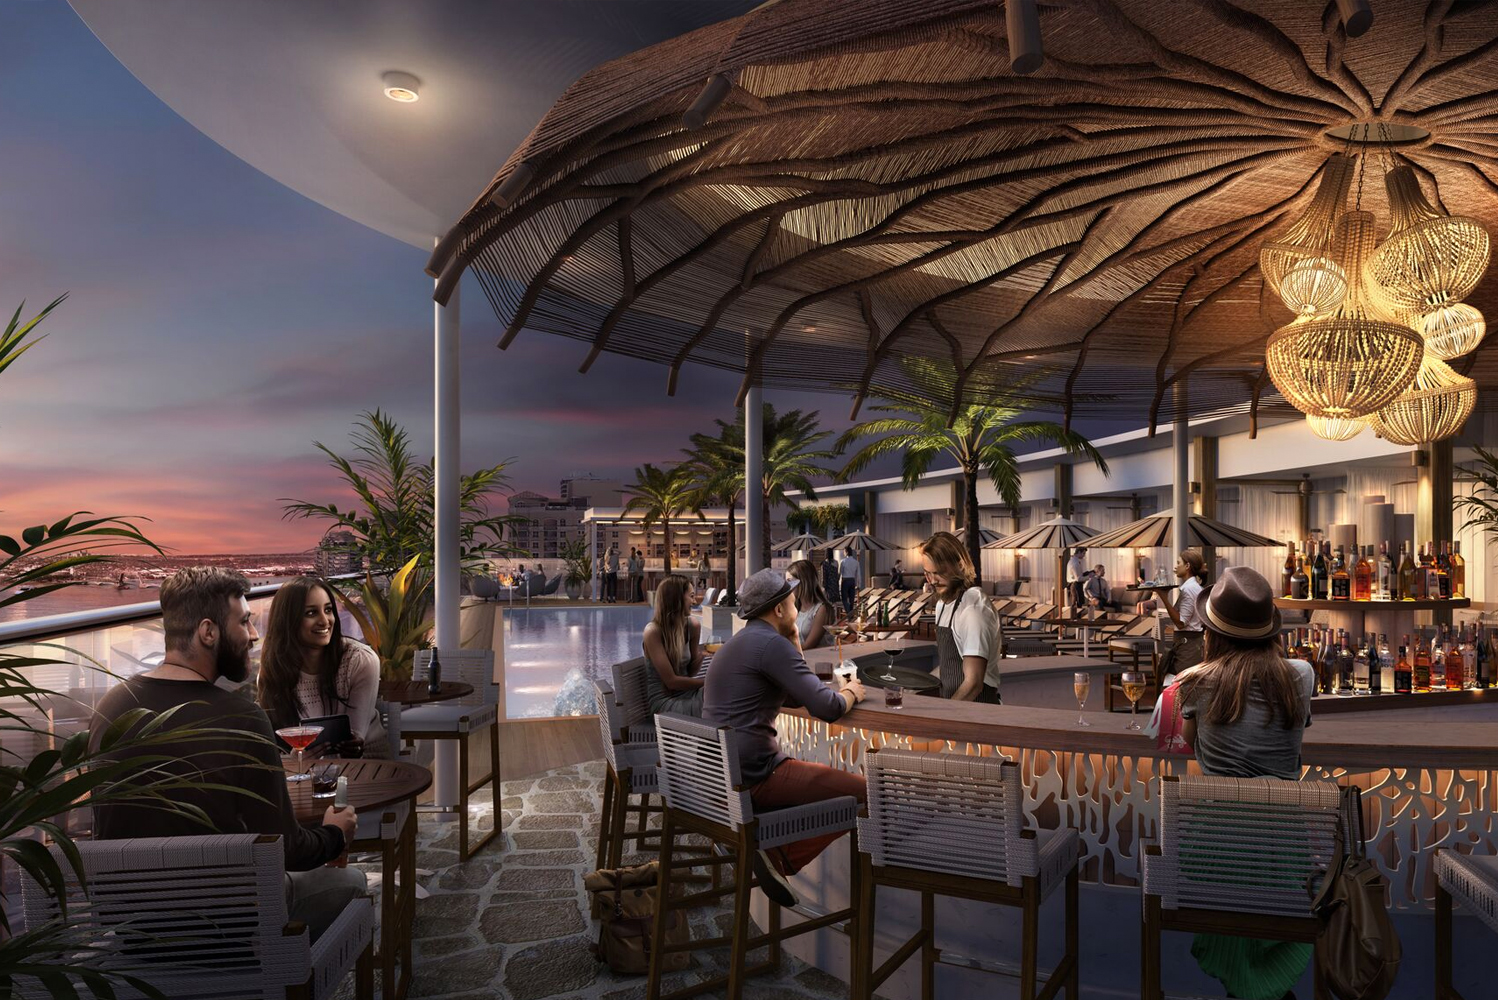 The property will be outfitted by South Florida design and architecture firm EoA.